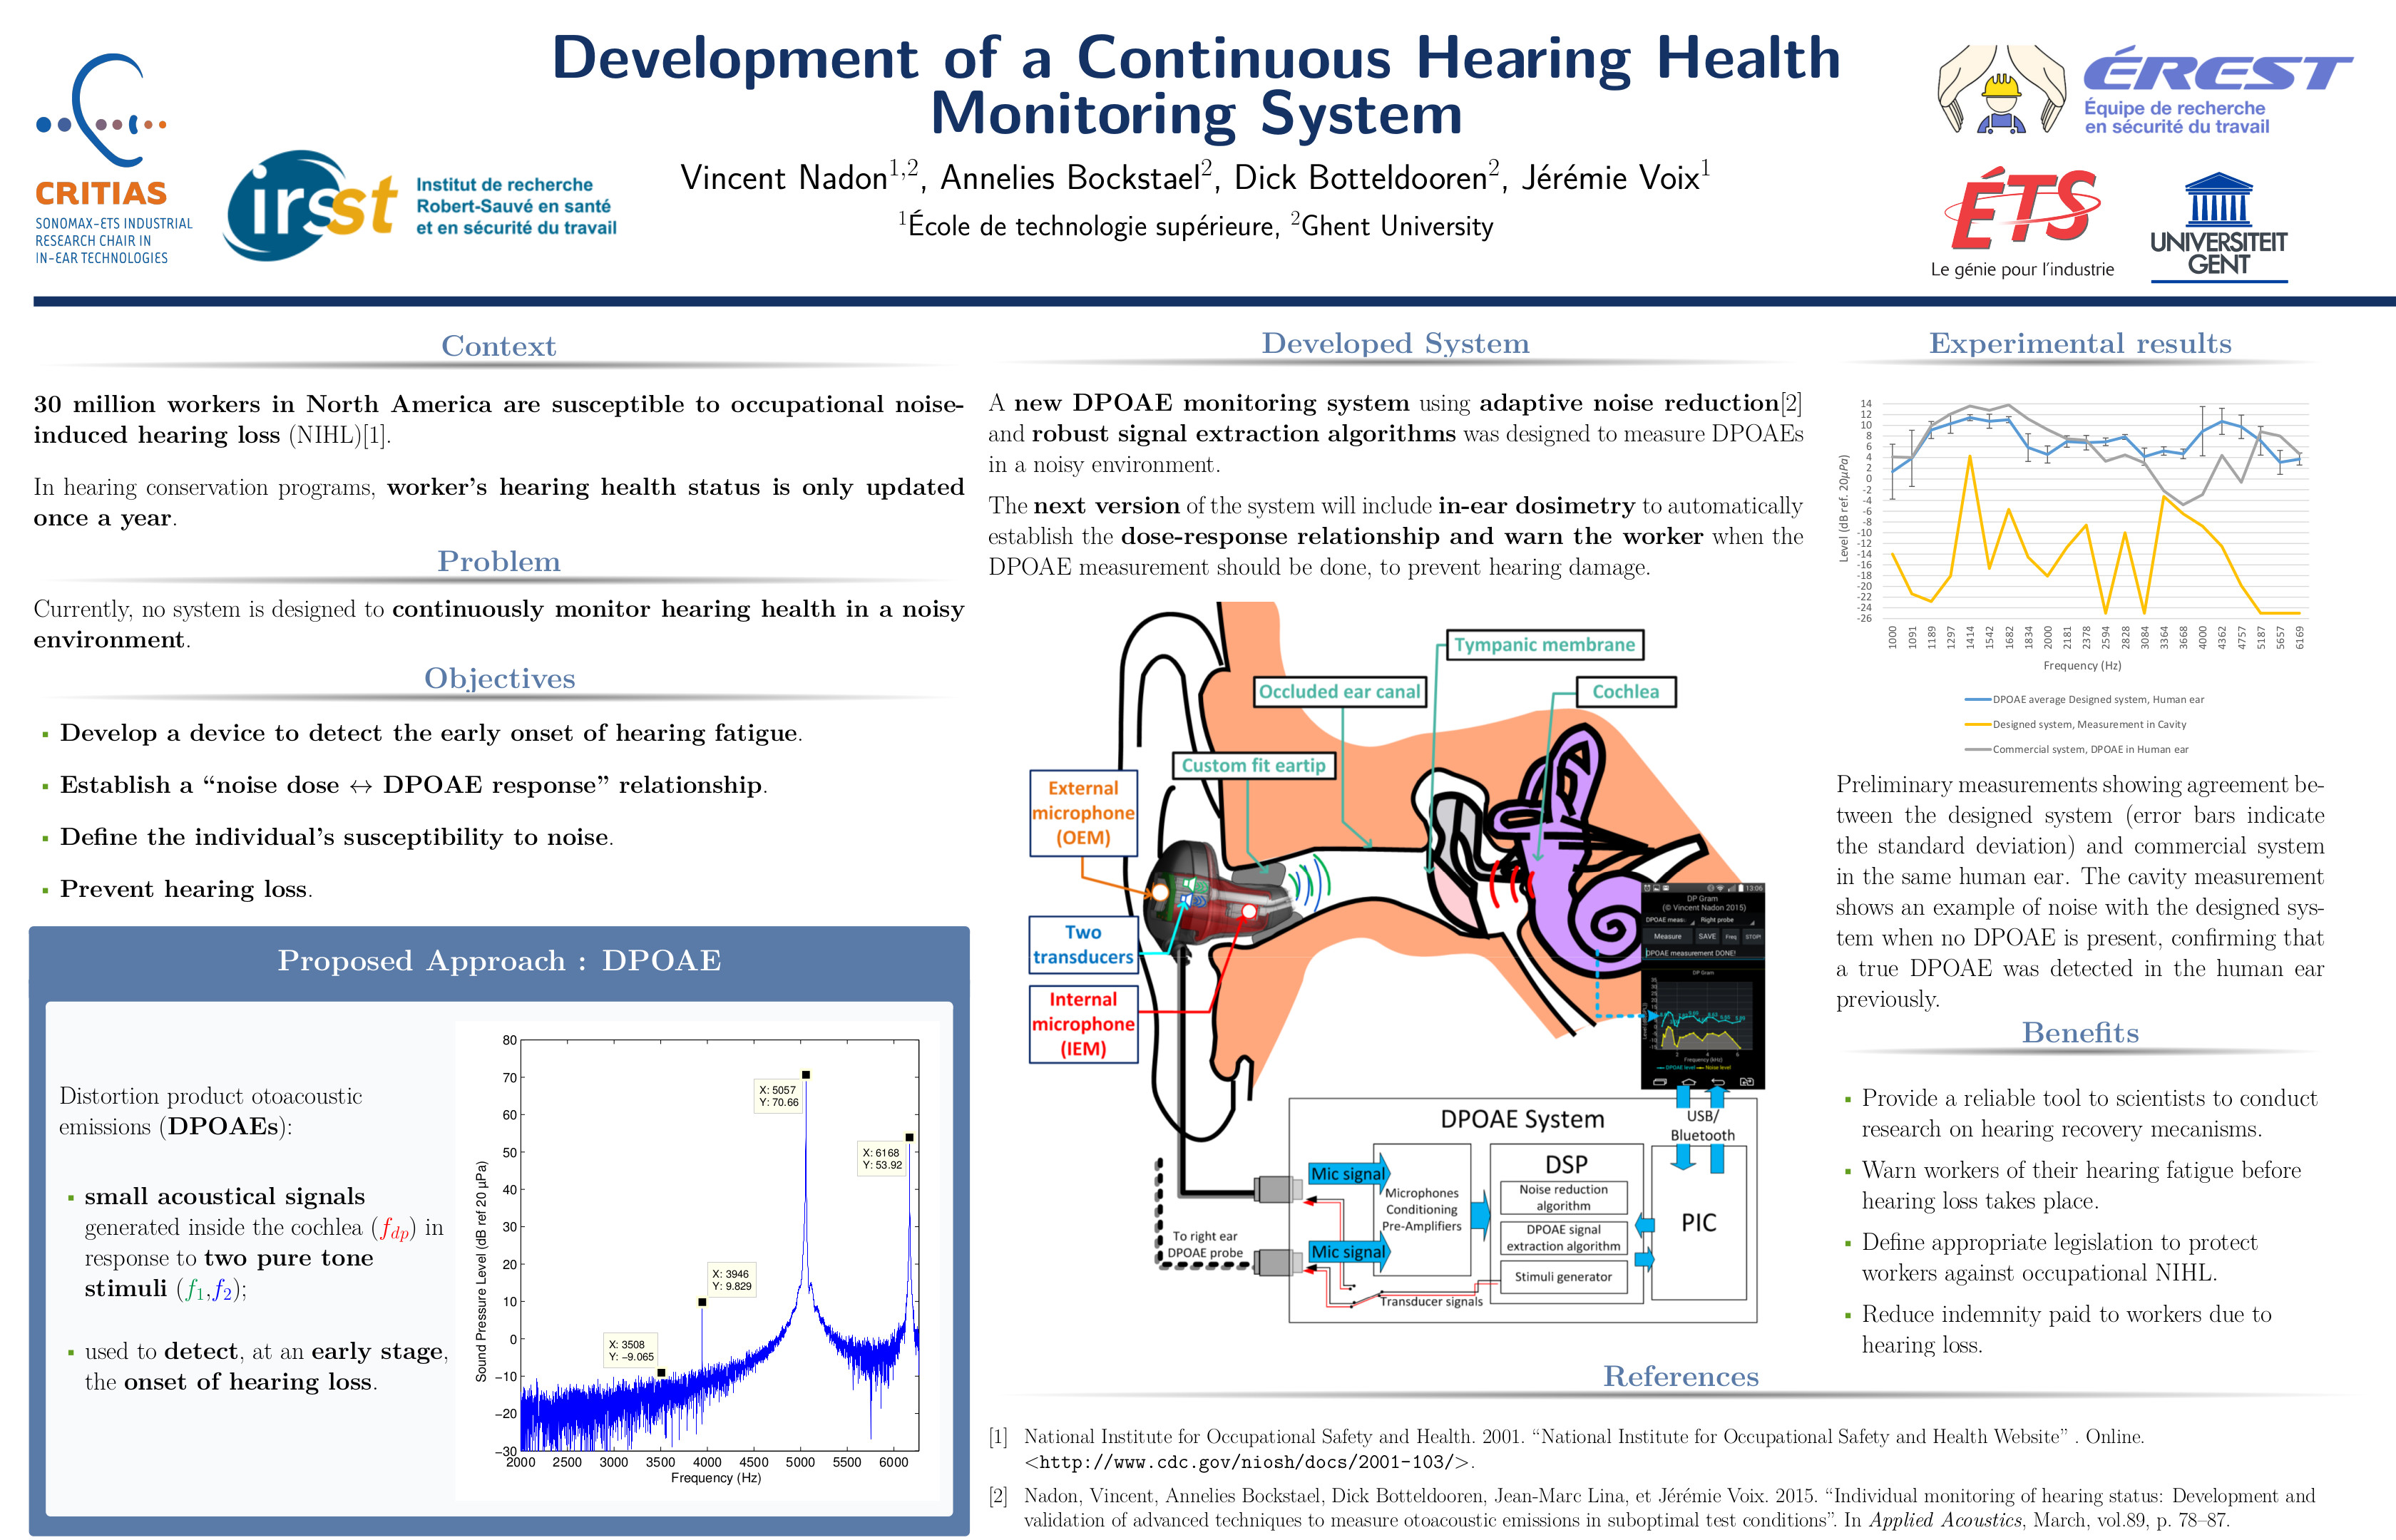 Vincent Nadon et al. - 2016 -EREST Development of a Continuous Hearing Health Monitoring System